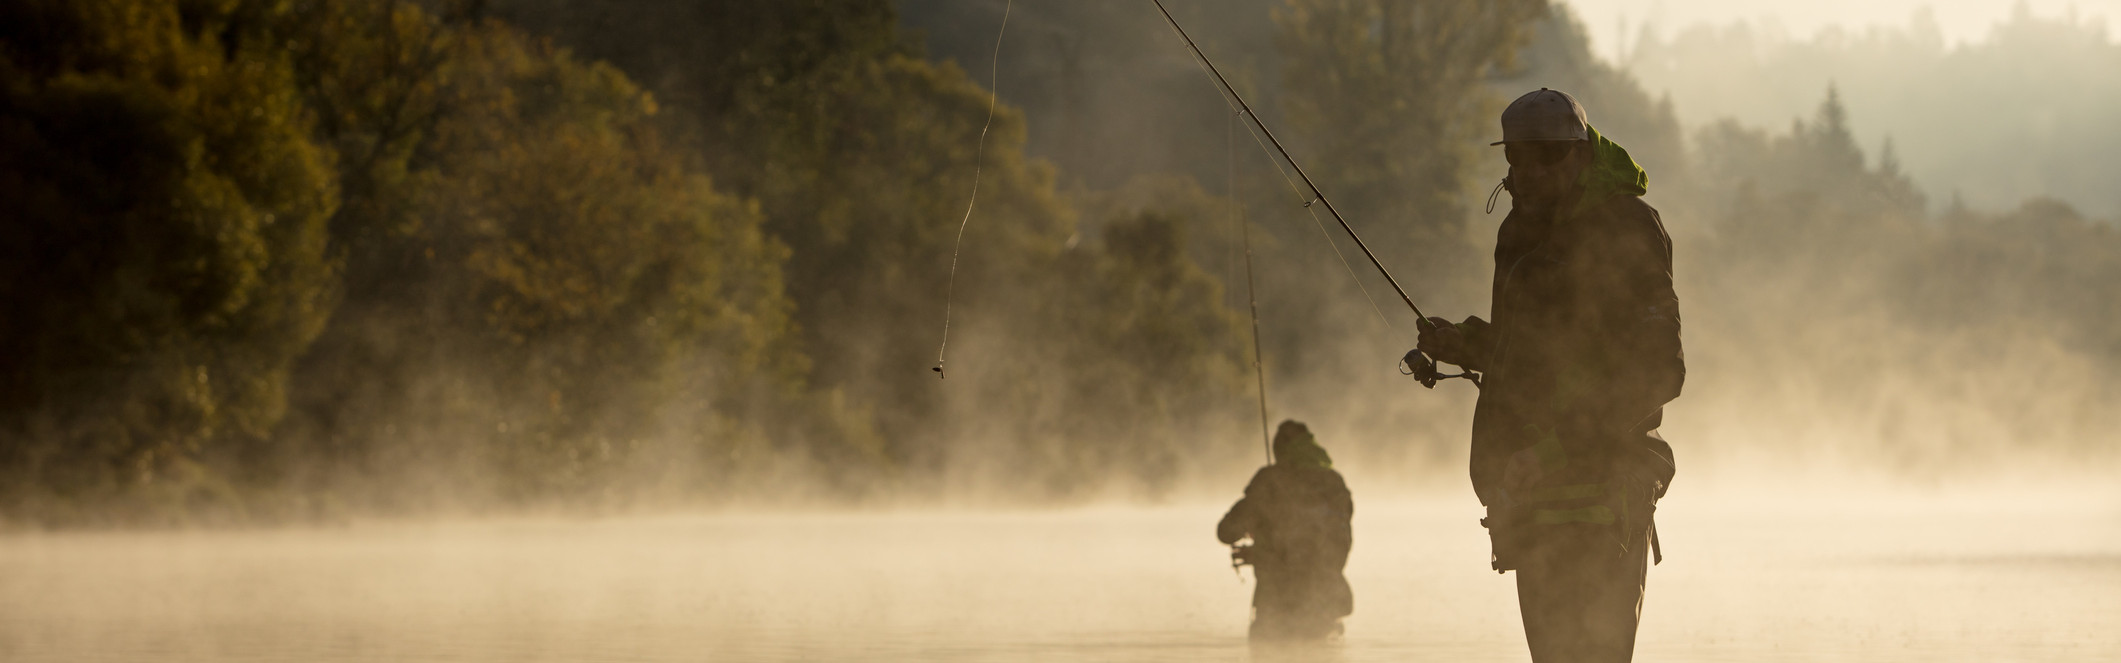 How Fly Fishing is Helping Heal Disabled Veterans